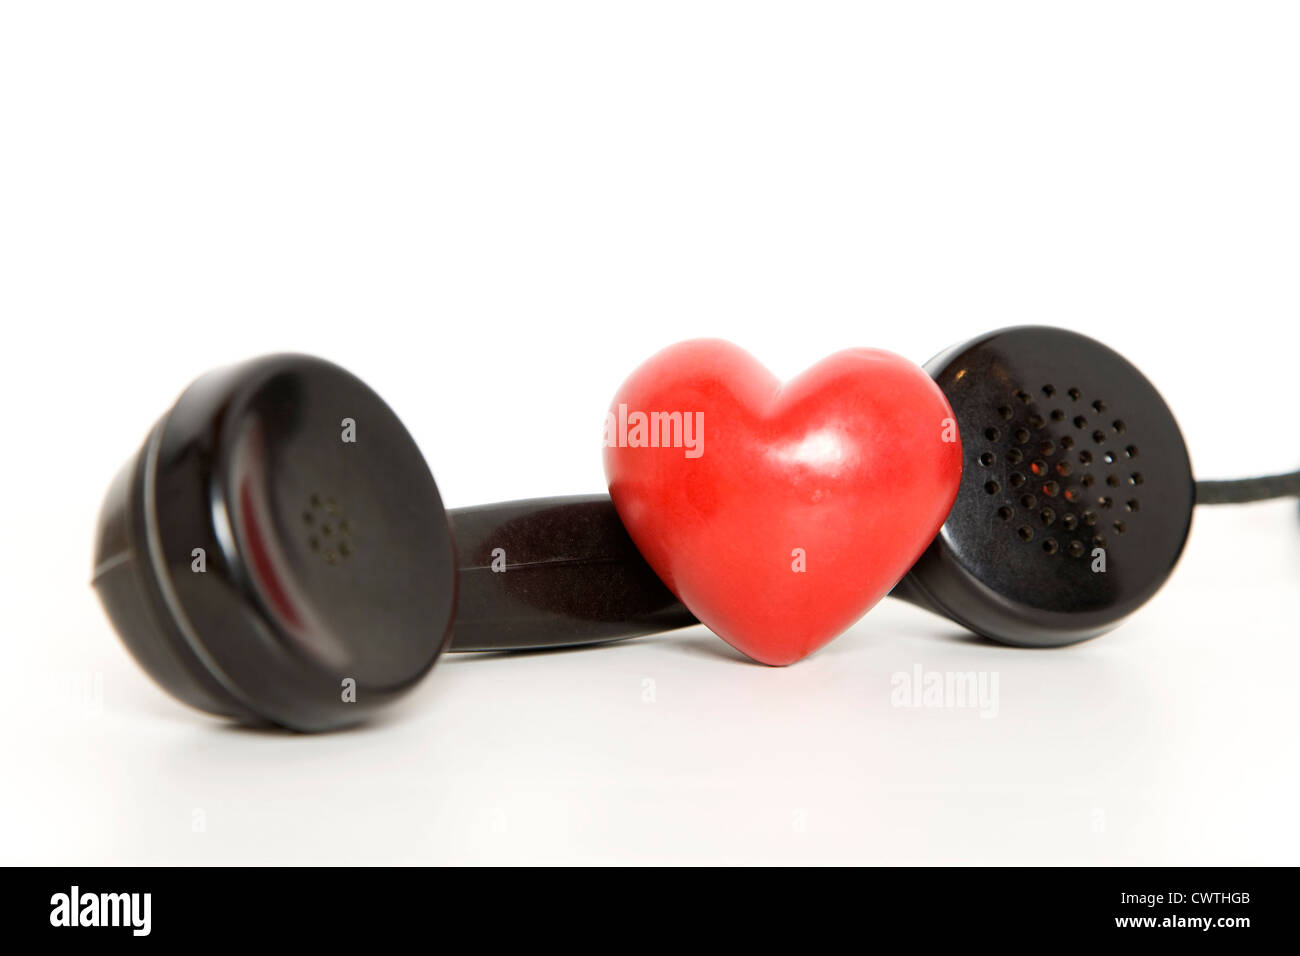 Heart with old-fashioned telephone receiver - Stock Image